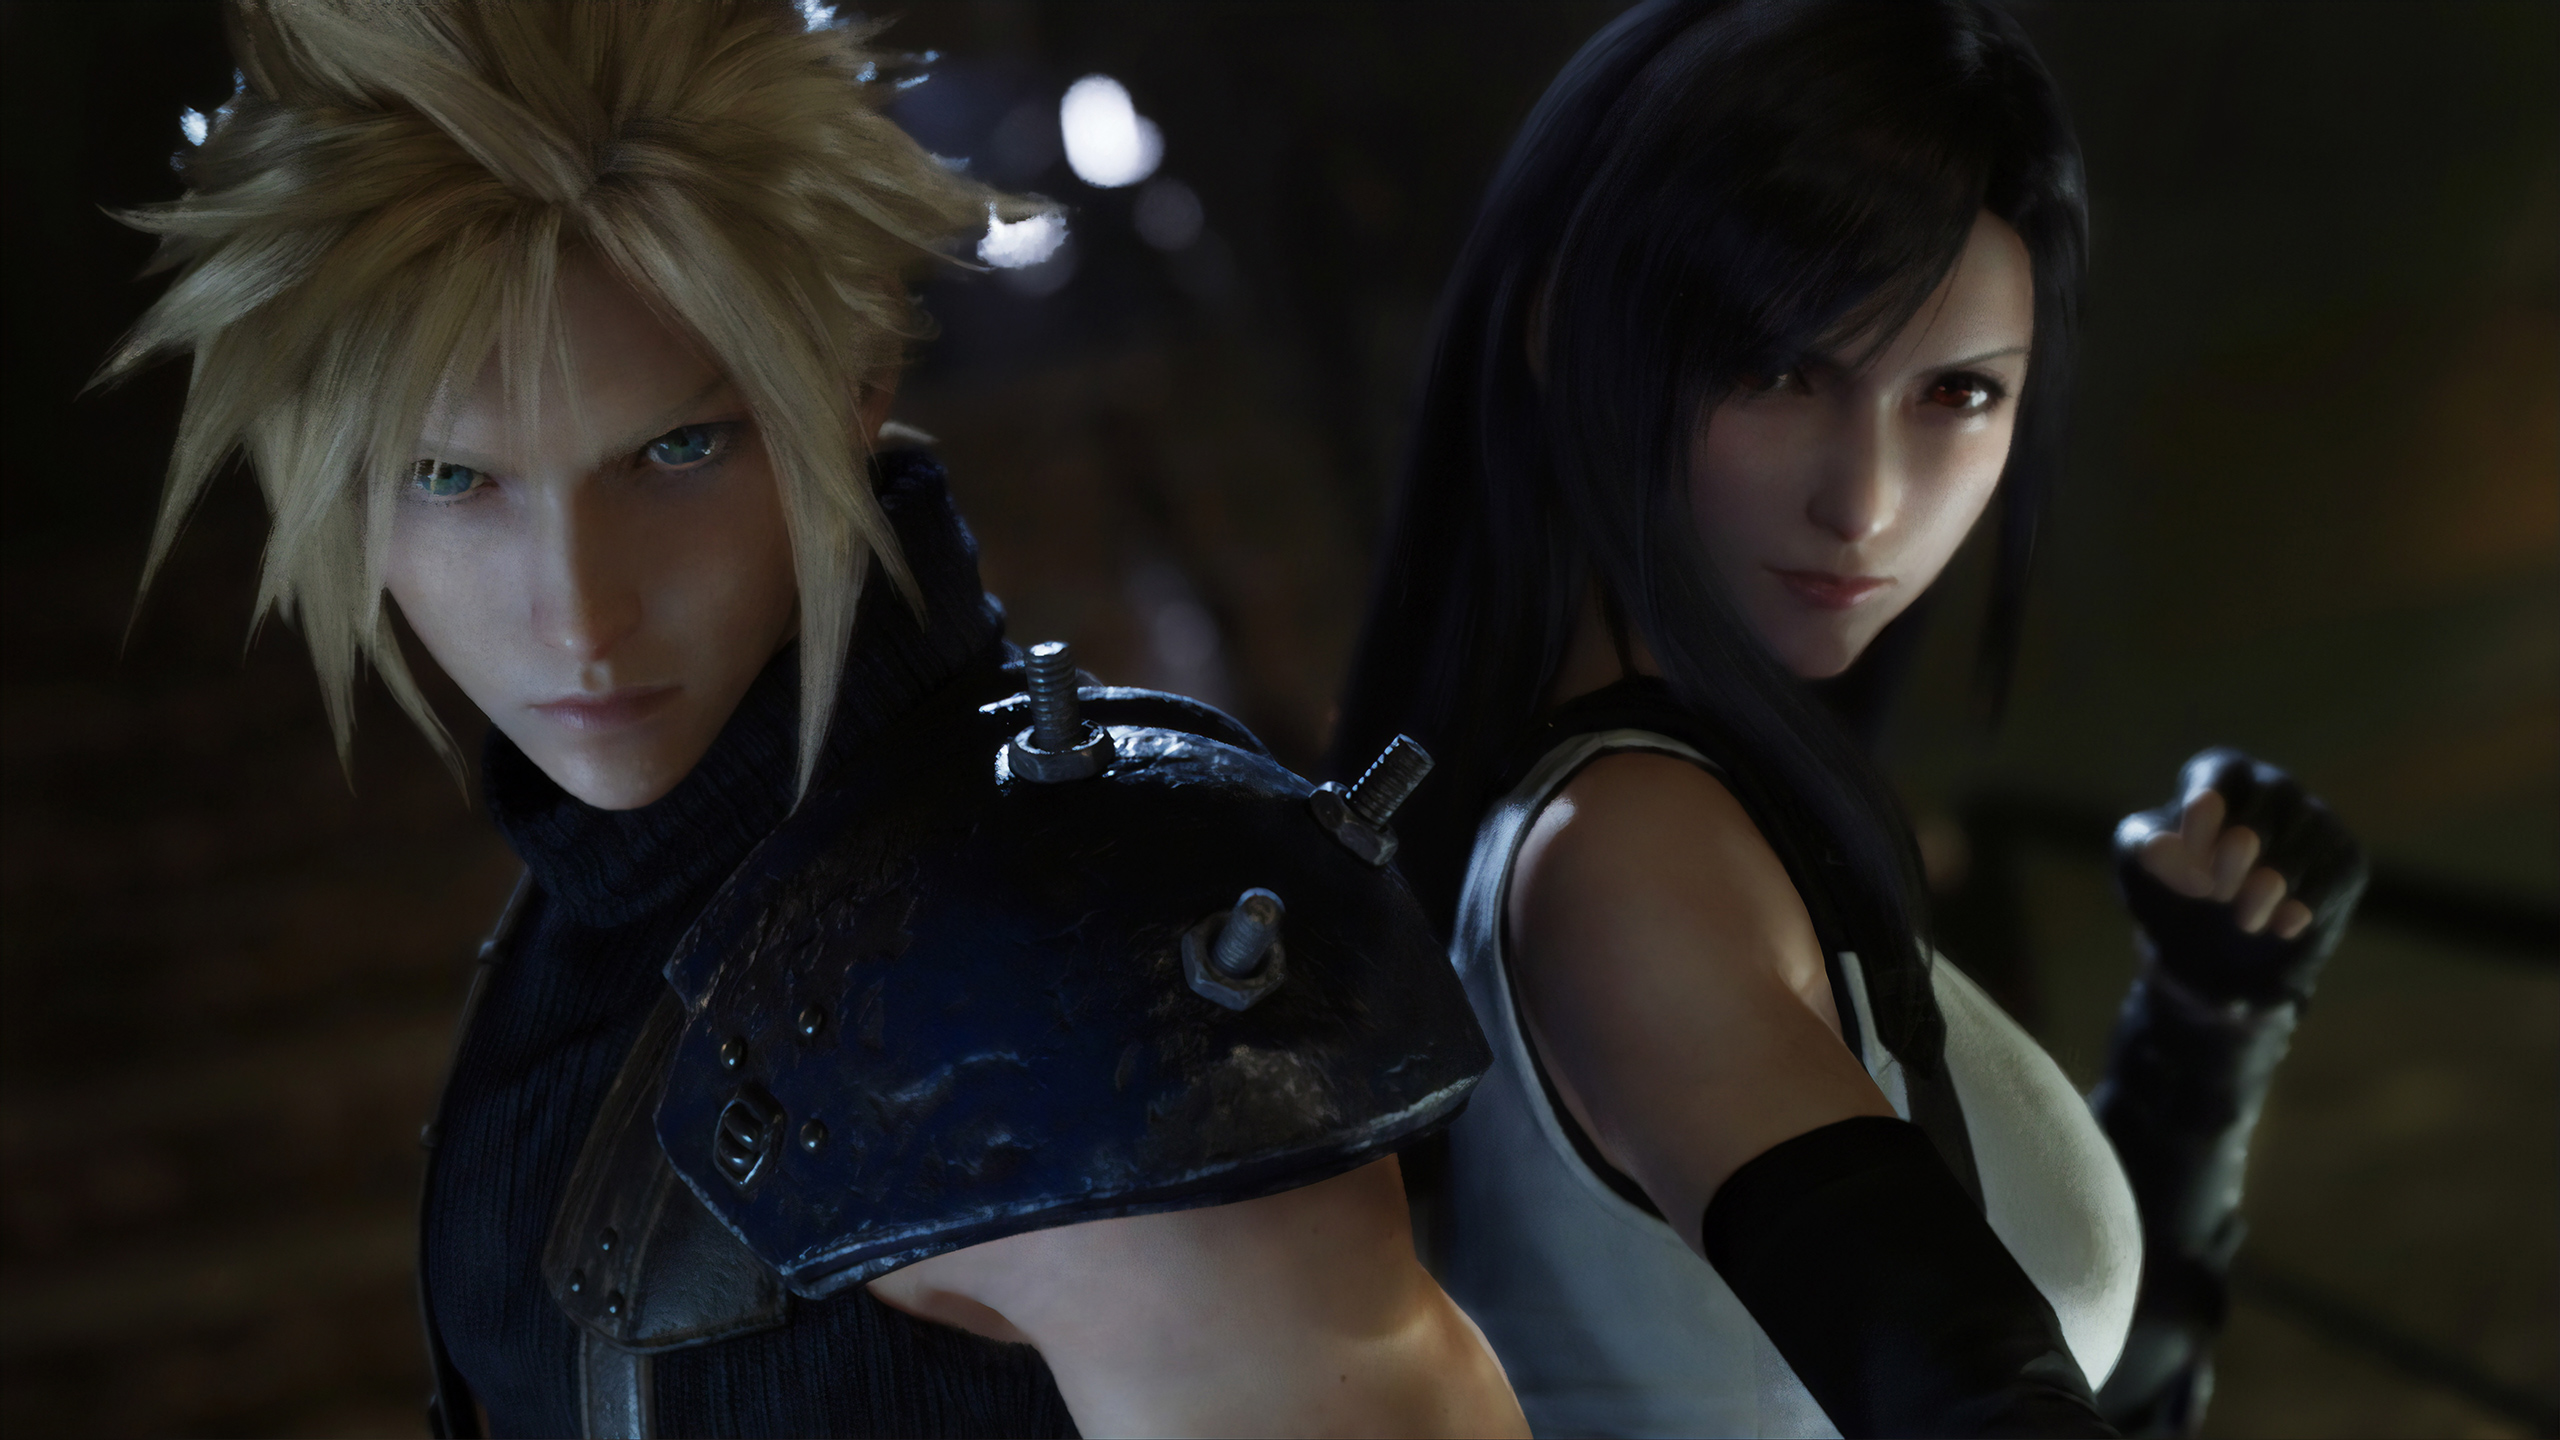 Final Fantasy Vii Remake 2019 Hd Games 4k Wallpapers Images Backgrounds Photos And Pictures